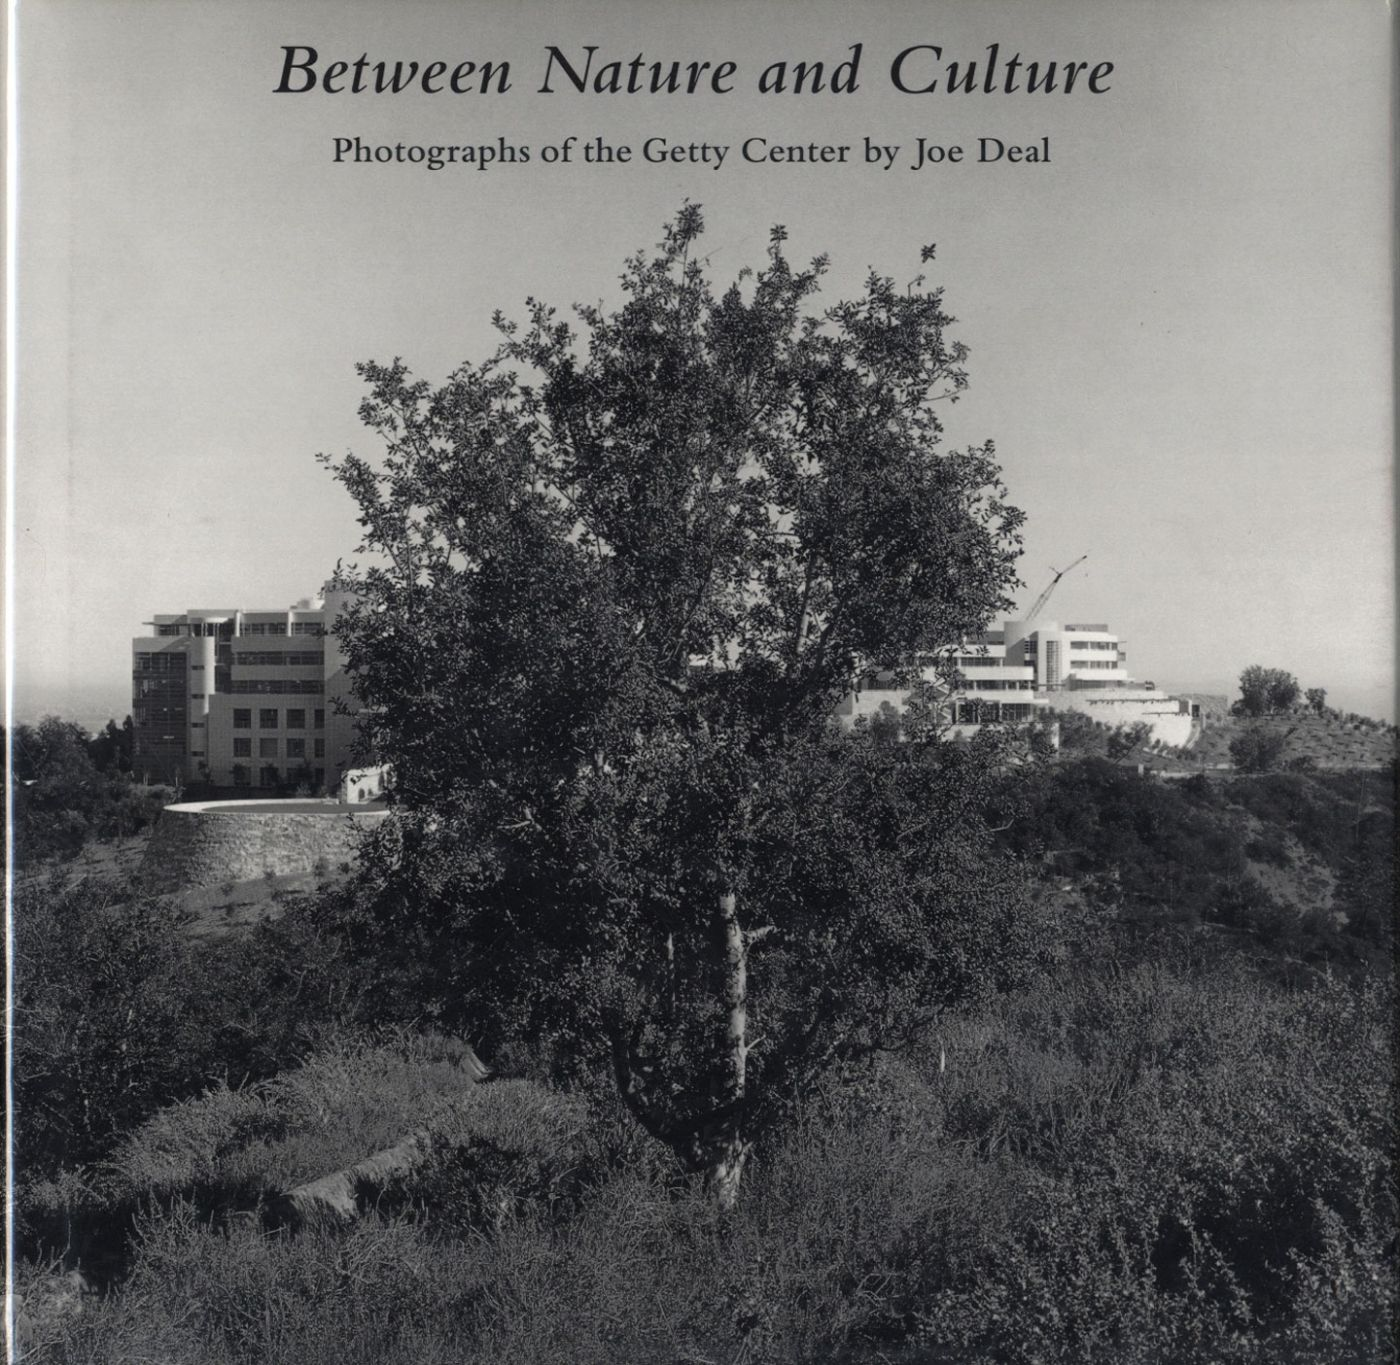 Between Nature and Culture: Photographs of the Getty Center by Joe Deal